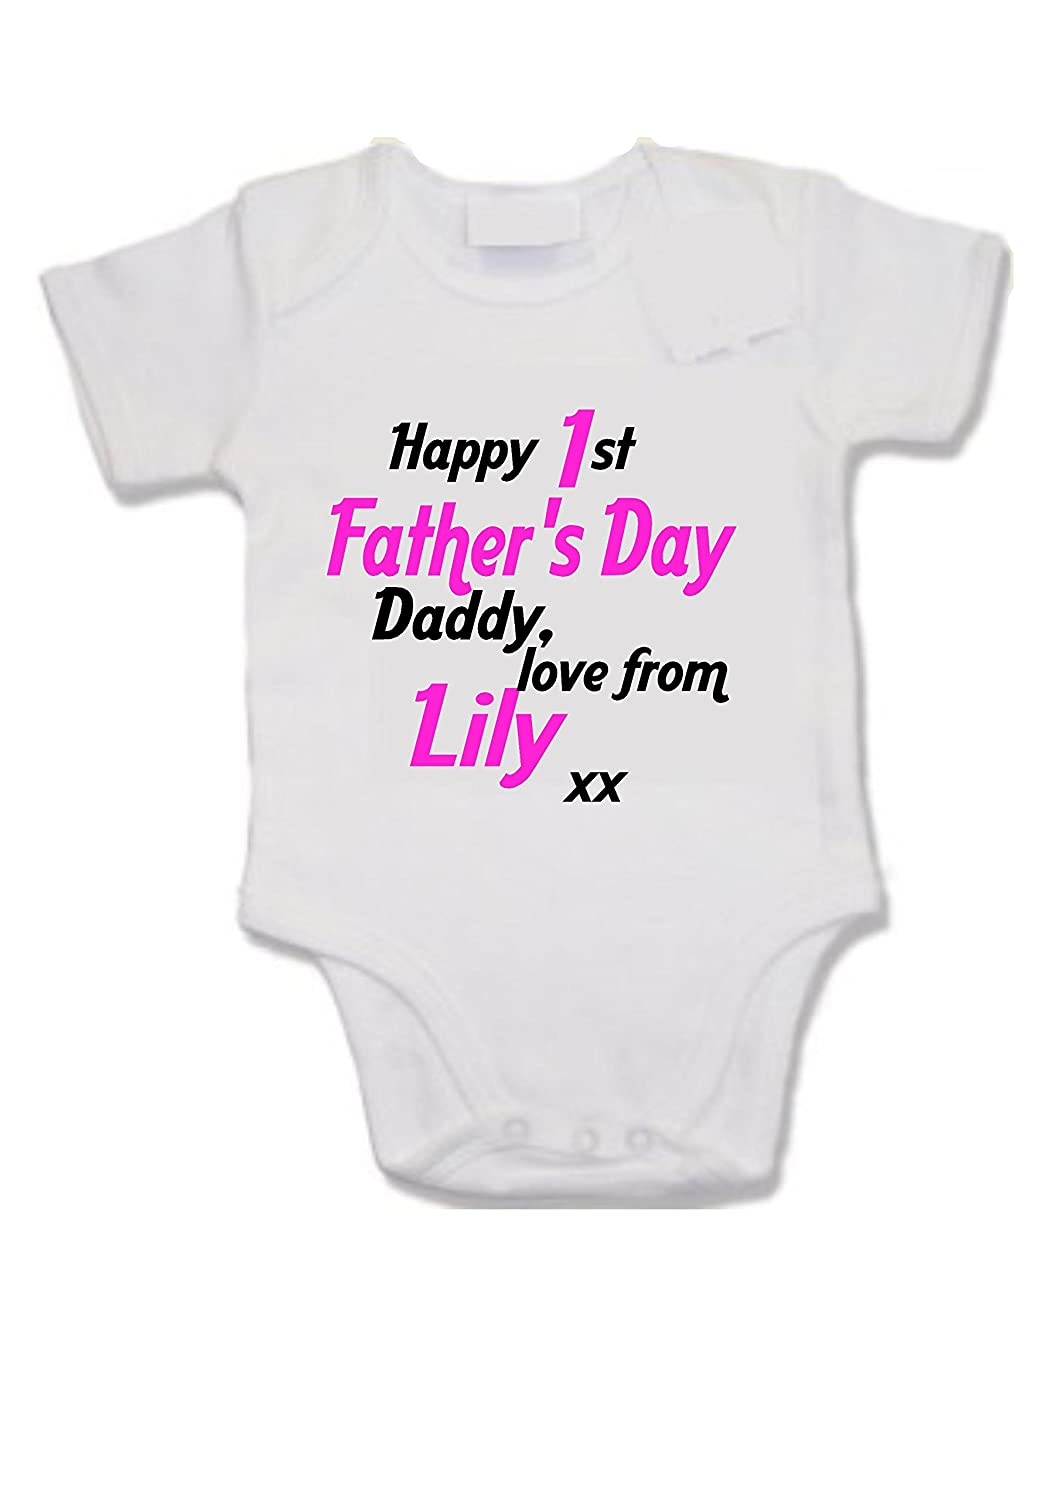 Customised baby vest - Happy 1st Father's Day Daddy love from (your name) xx daughter